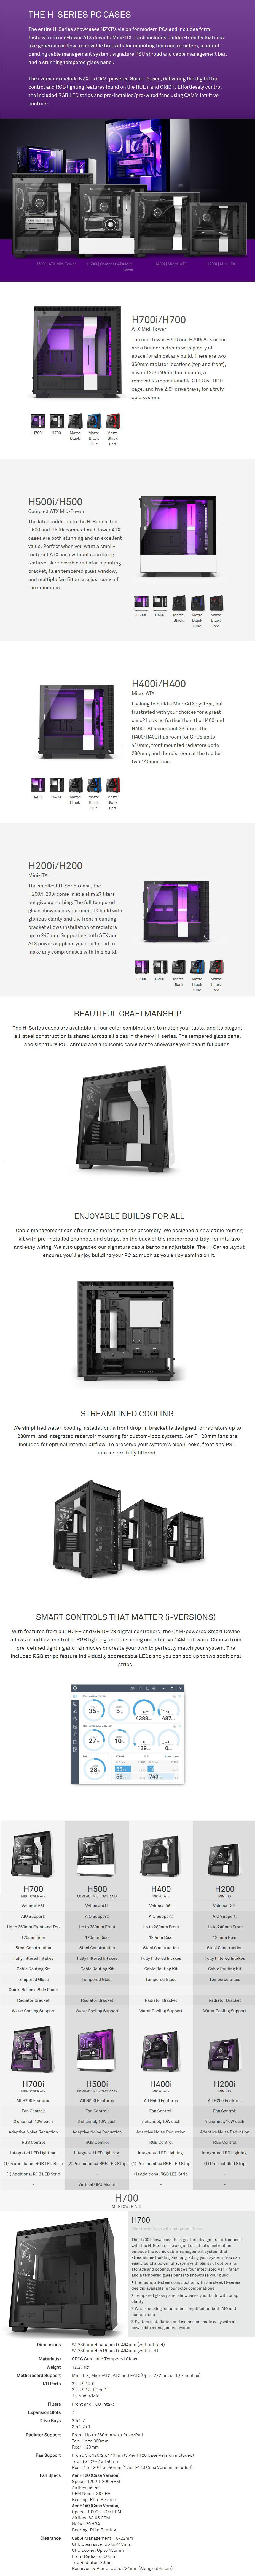 NZXT H700 Tempered Glass Mid-Tower E-ATX Case - Matte Black - Desktop Overview 1